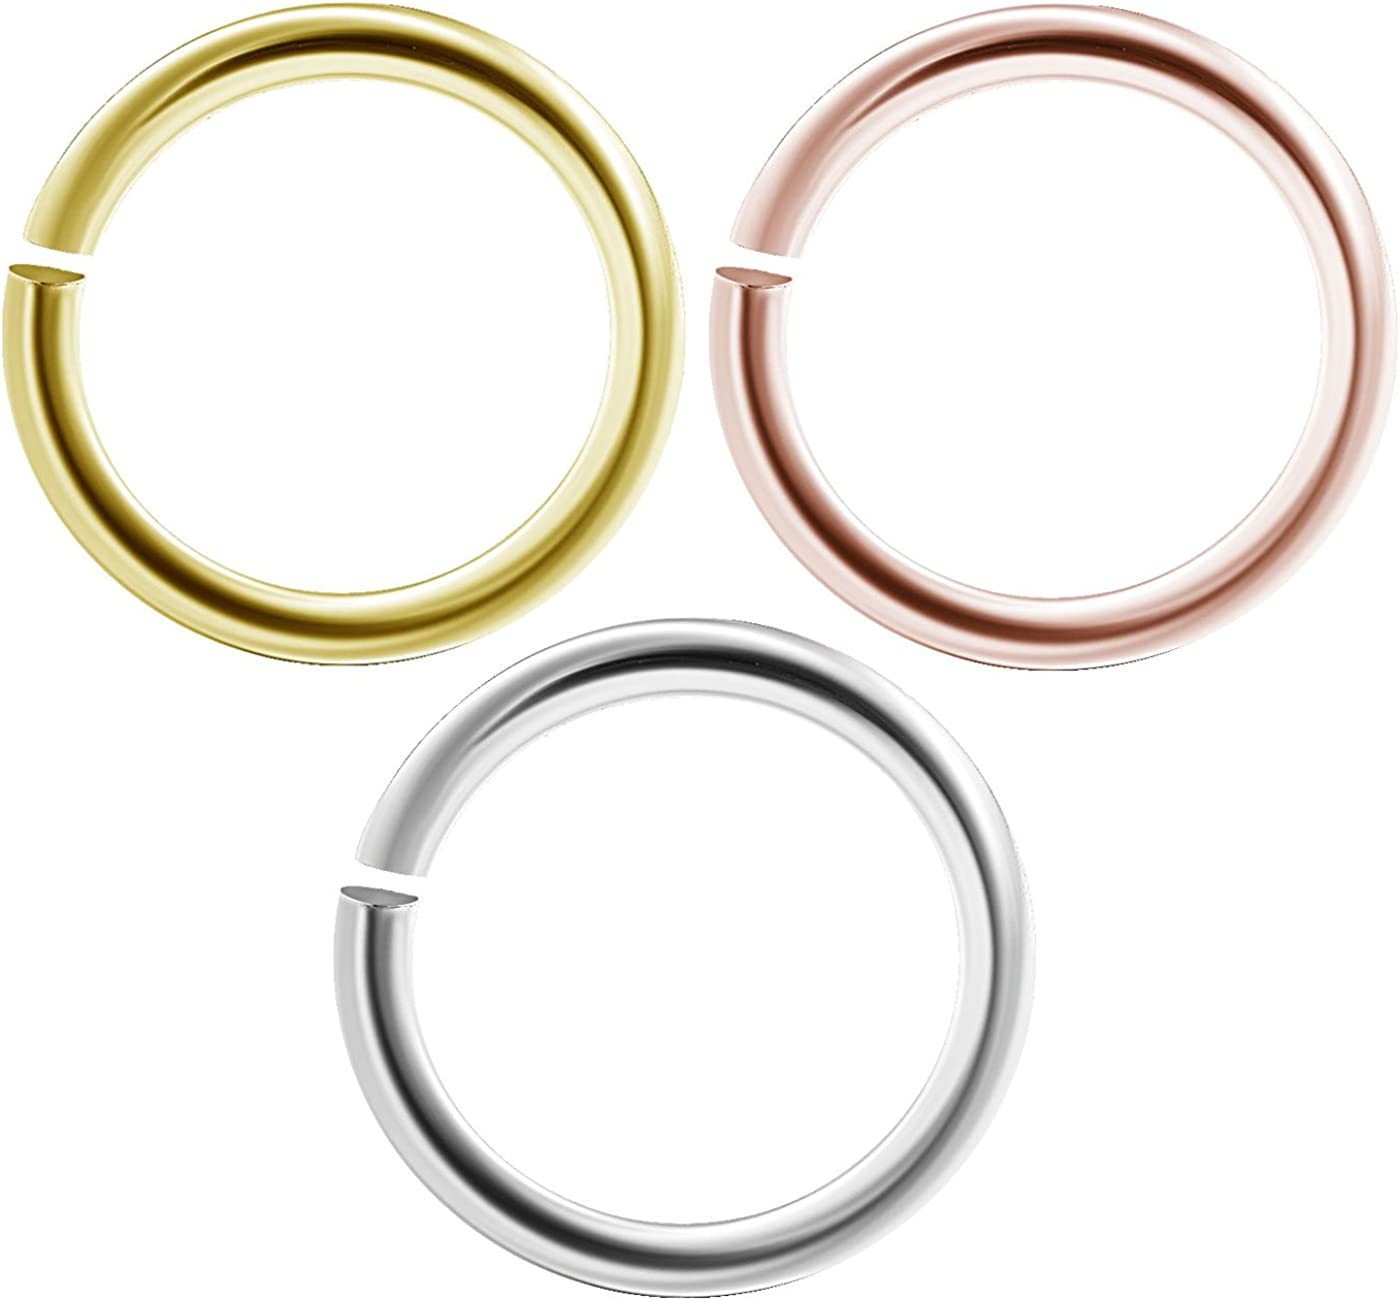 bodyjewellery 3pcs 16g 1.2mm Nose Hoop Rings Seamless Nostril Septum Cartilage Piercing Jewelry Gauge Anodized Steel - Pick Size